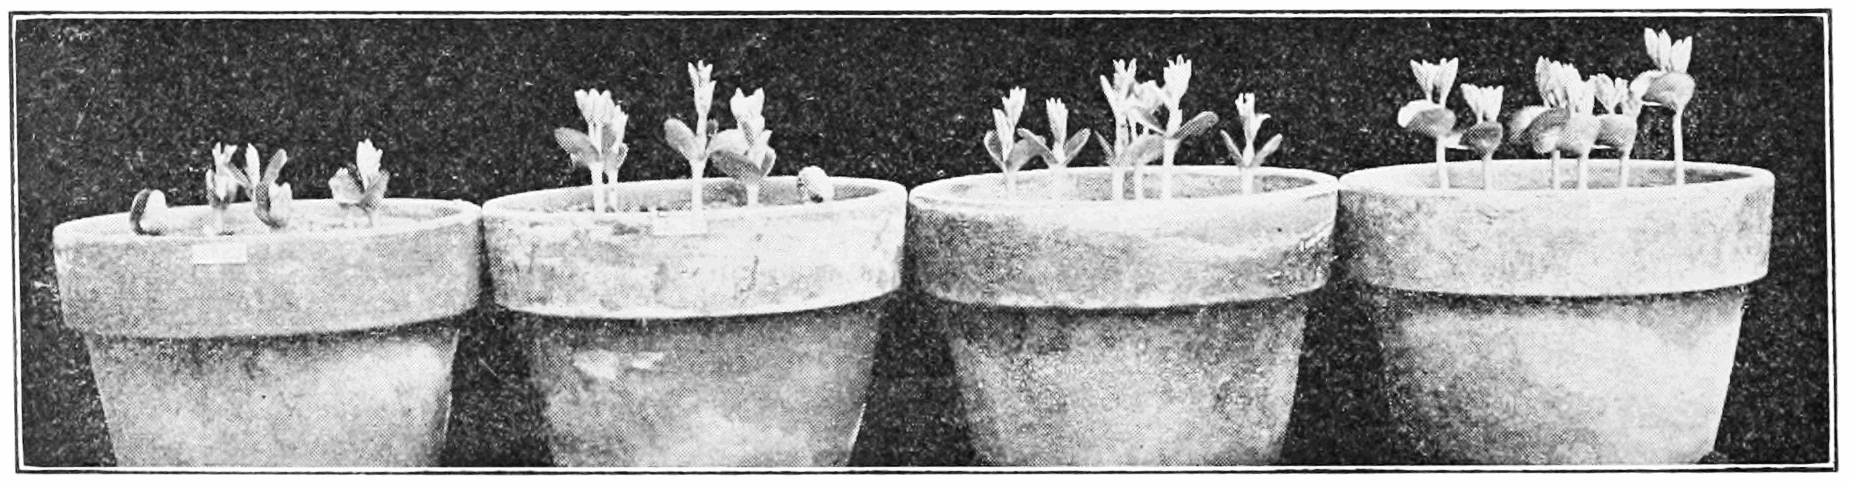 PSM V74 D230 The negative effects of radium exposure on plant growth.png